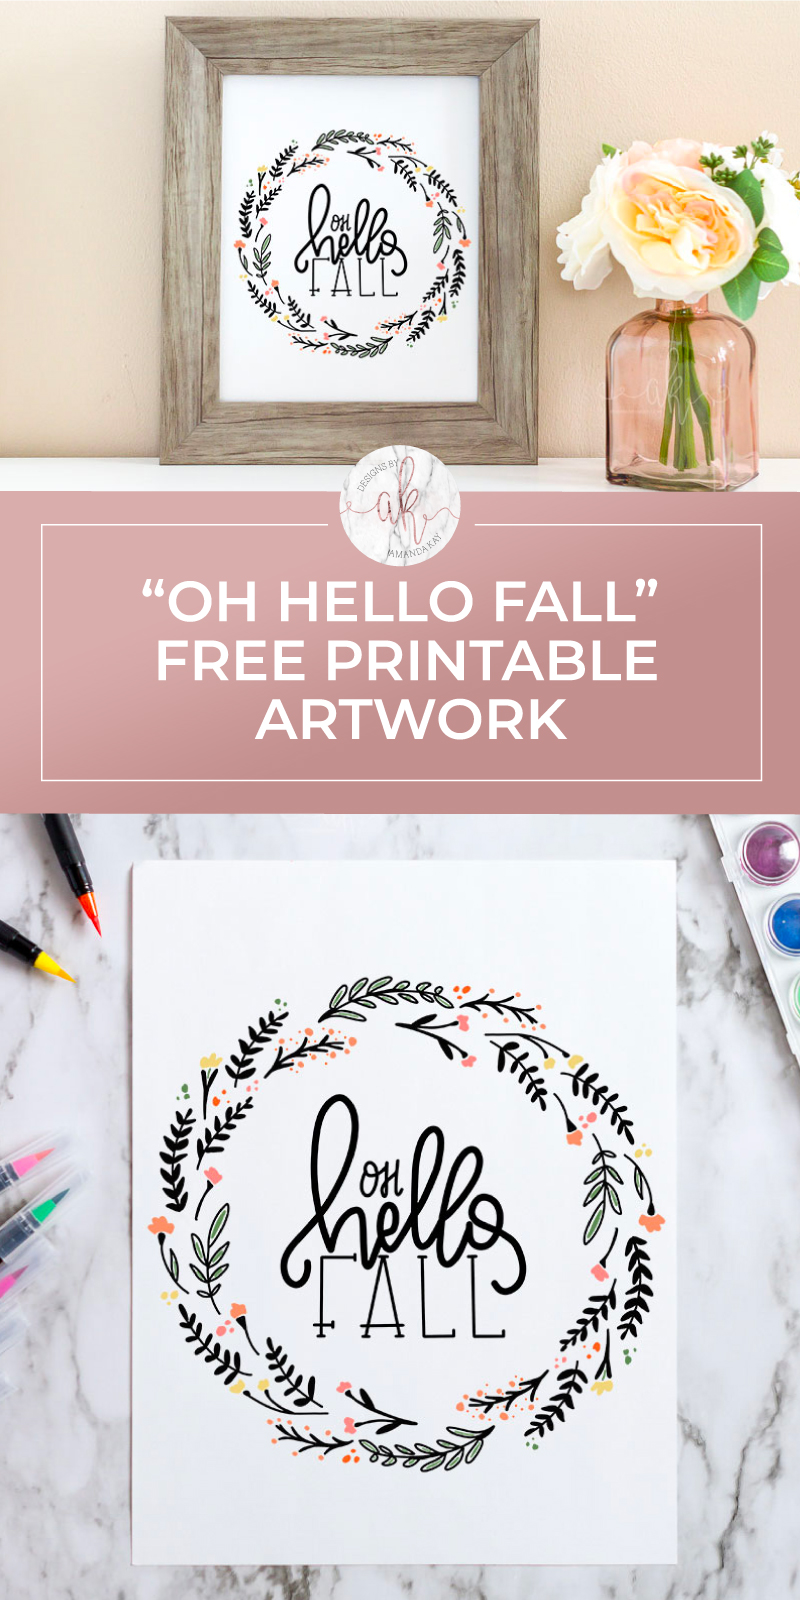 Fall is right around the corner! Download this Hello Fall free printable artwork for an easy and whimsical piece to add to your Fall displays.  #fallfreeprintable #hellofallprintable #hellofallfreeprintable #freeprintableartwork #freefallprintableartwork #fallprintableartwork #printableartwork #freeprintableart #fallprintableart #freefallprintableart #byamandakay